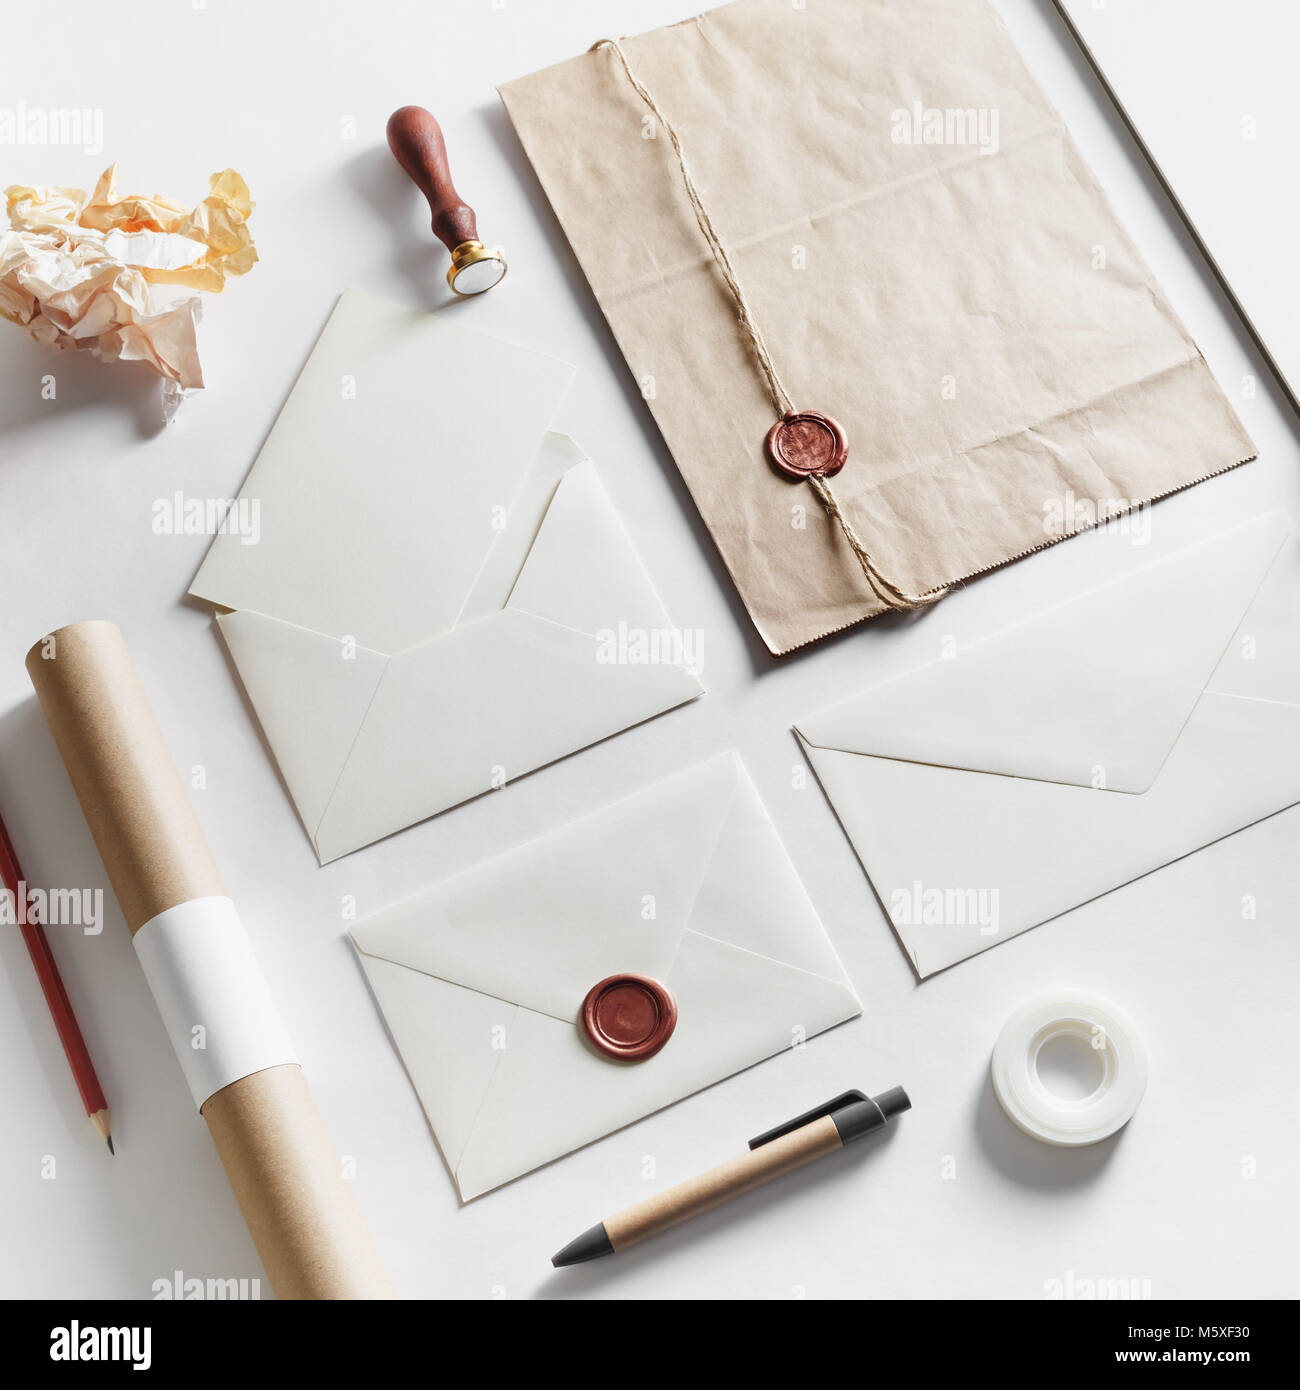 Vintage still life with postal accessories. Blank stationery and envelopes on paper background. Responsive design mockup. Stock Photo